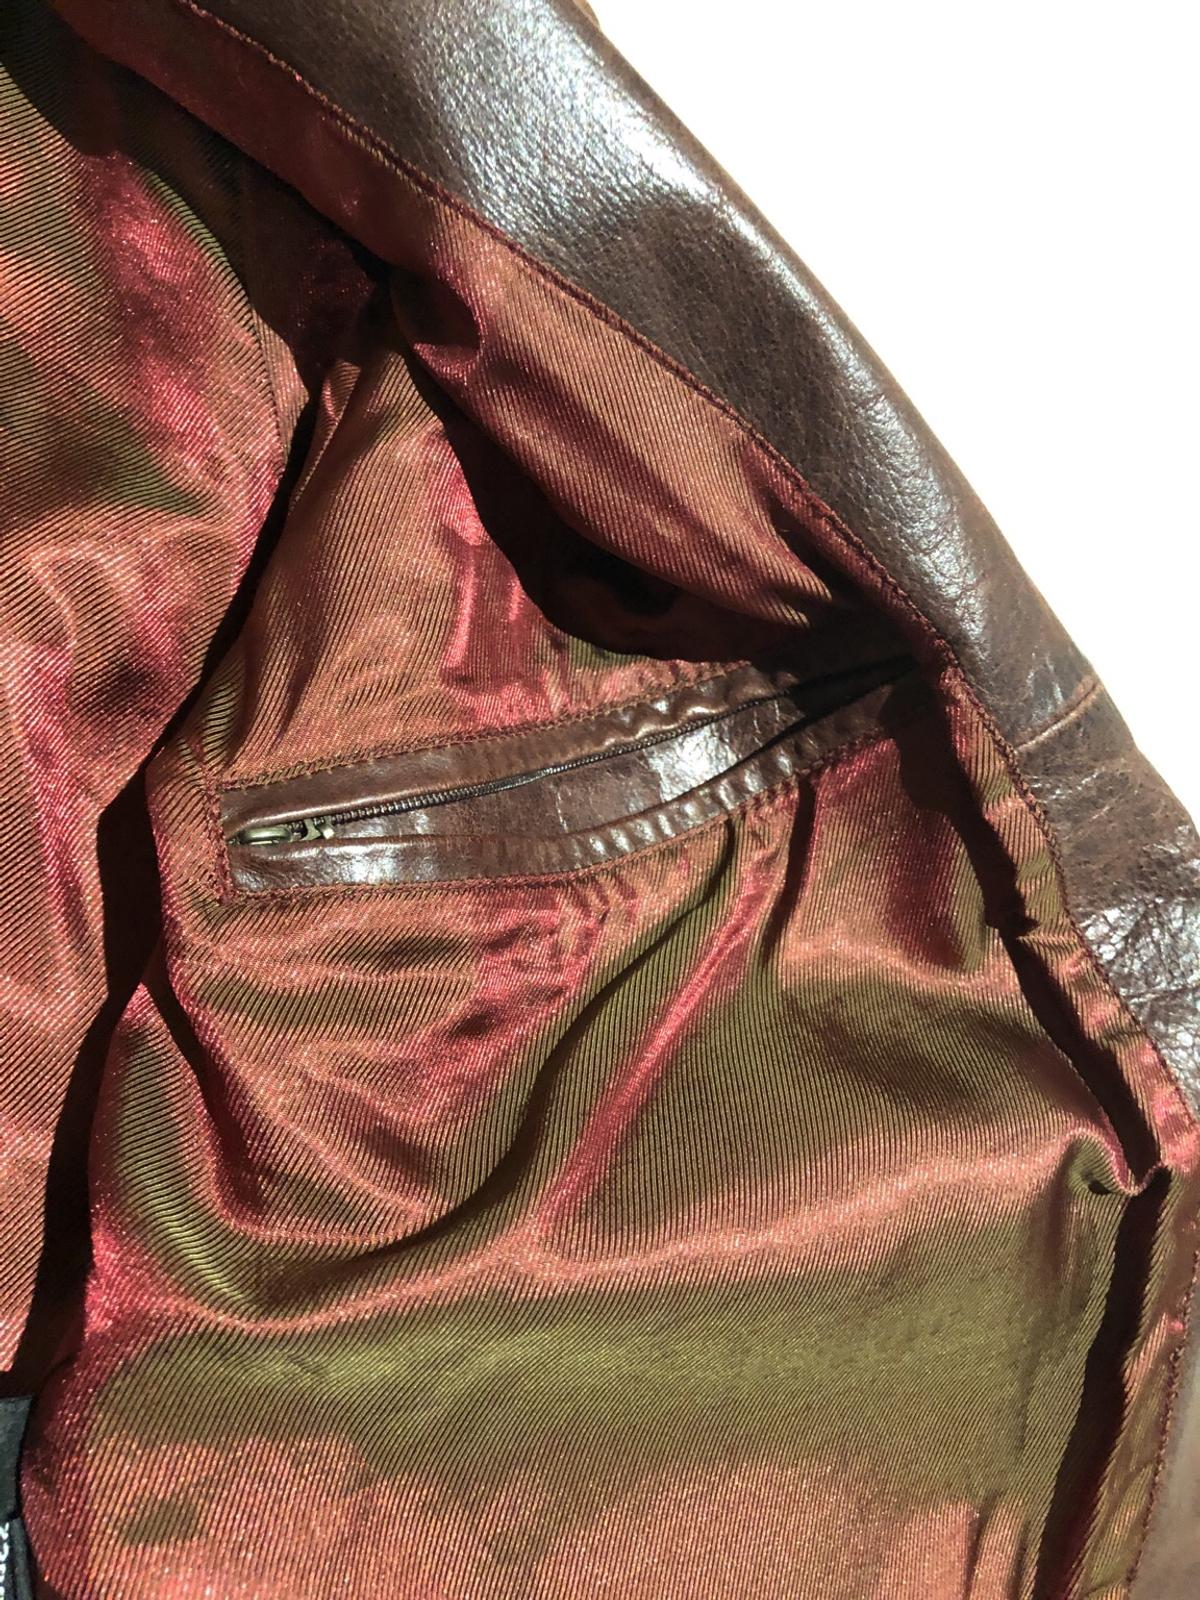 Great piece on sale - buy quickly as you'll not find such great distressed leather jacket.  Size L  Two inner pockets, inner lining perfect.  Great condition.